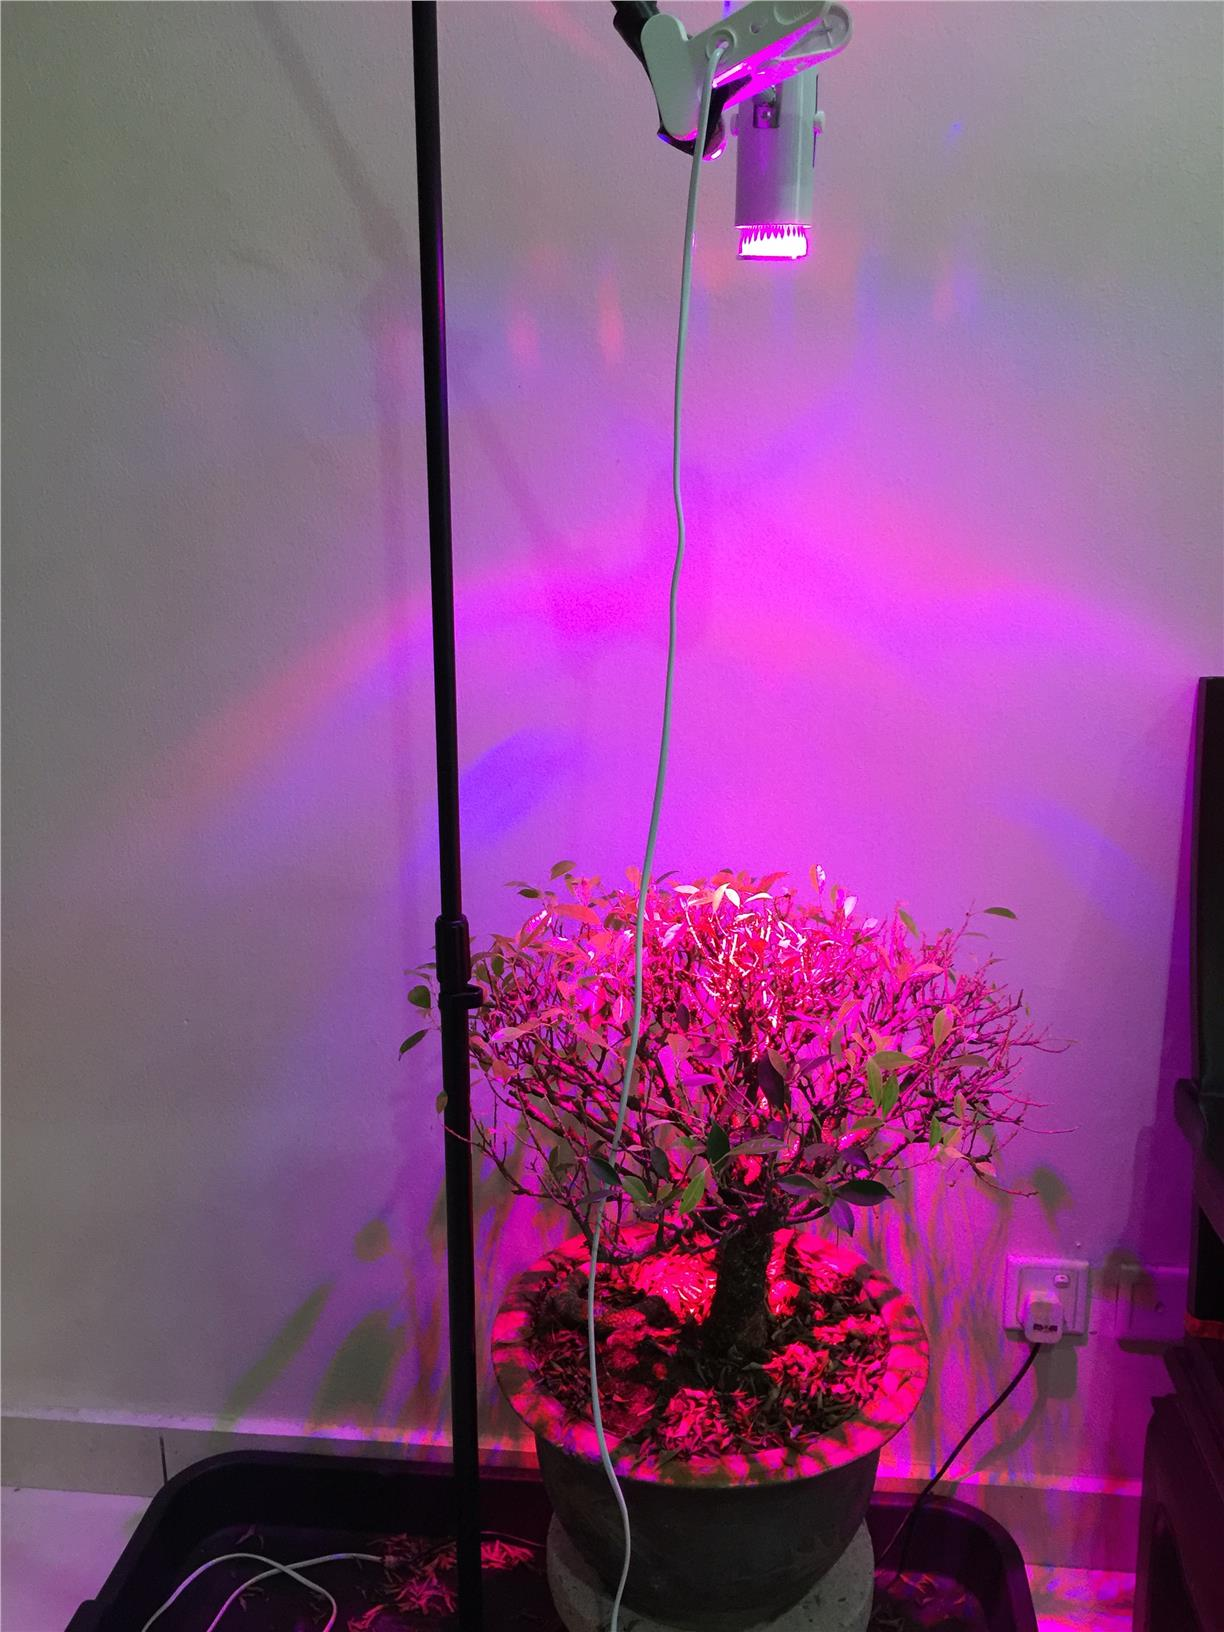 7w Led Grow Light For Indoor Plants End 4 12 2016 1 15 Pm